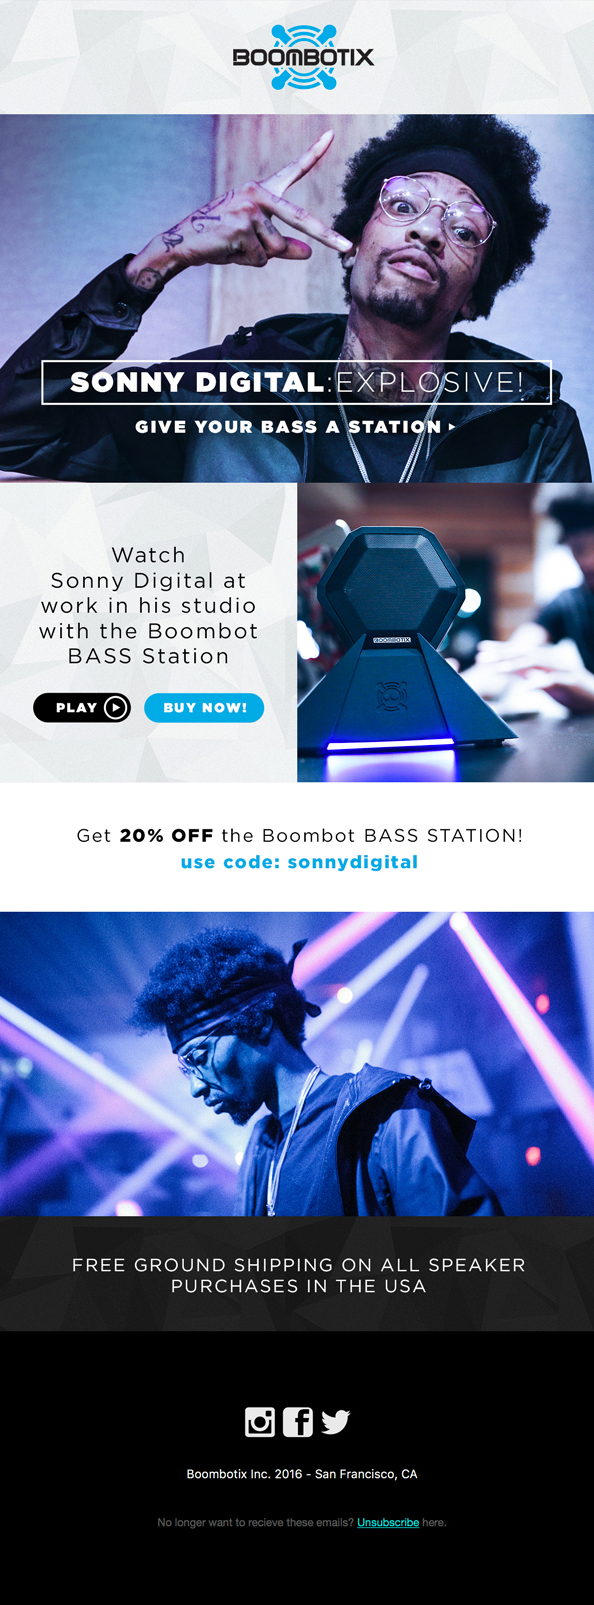 Boombotix email featuring Sonny Digital